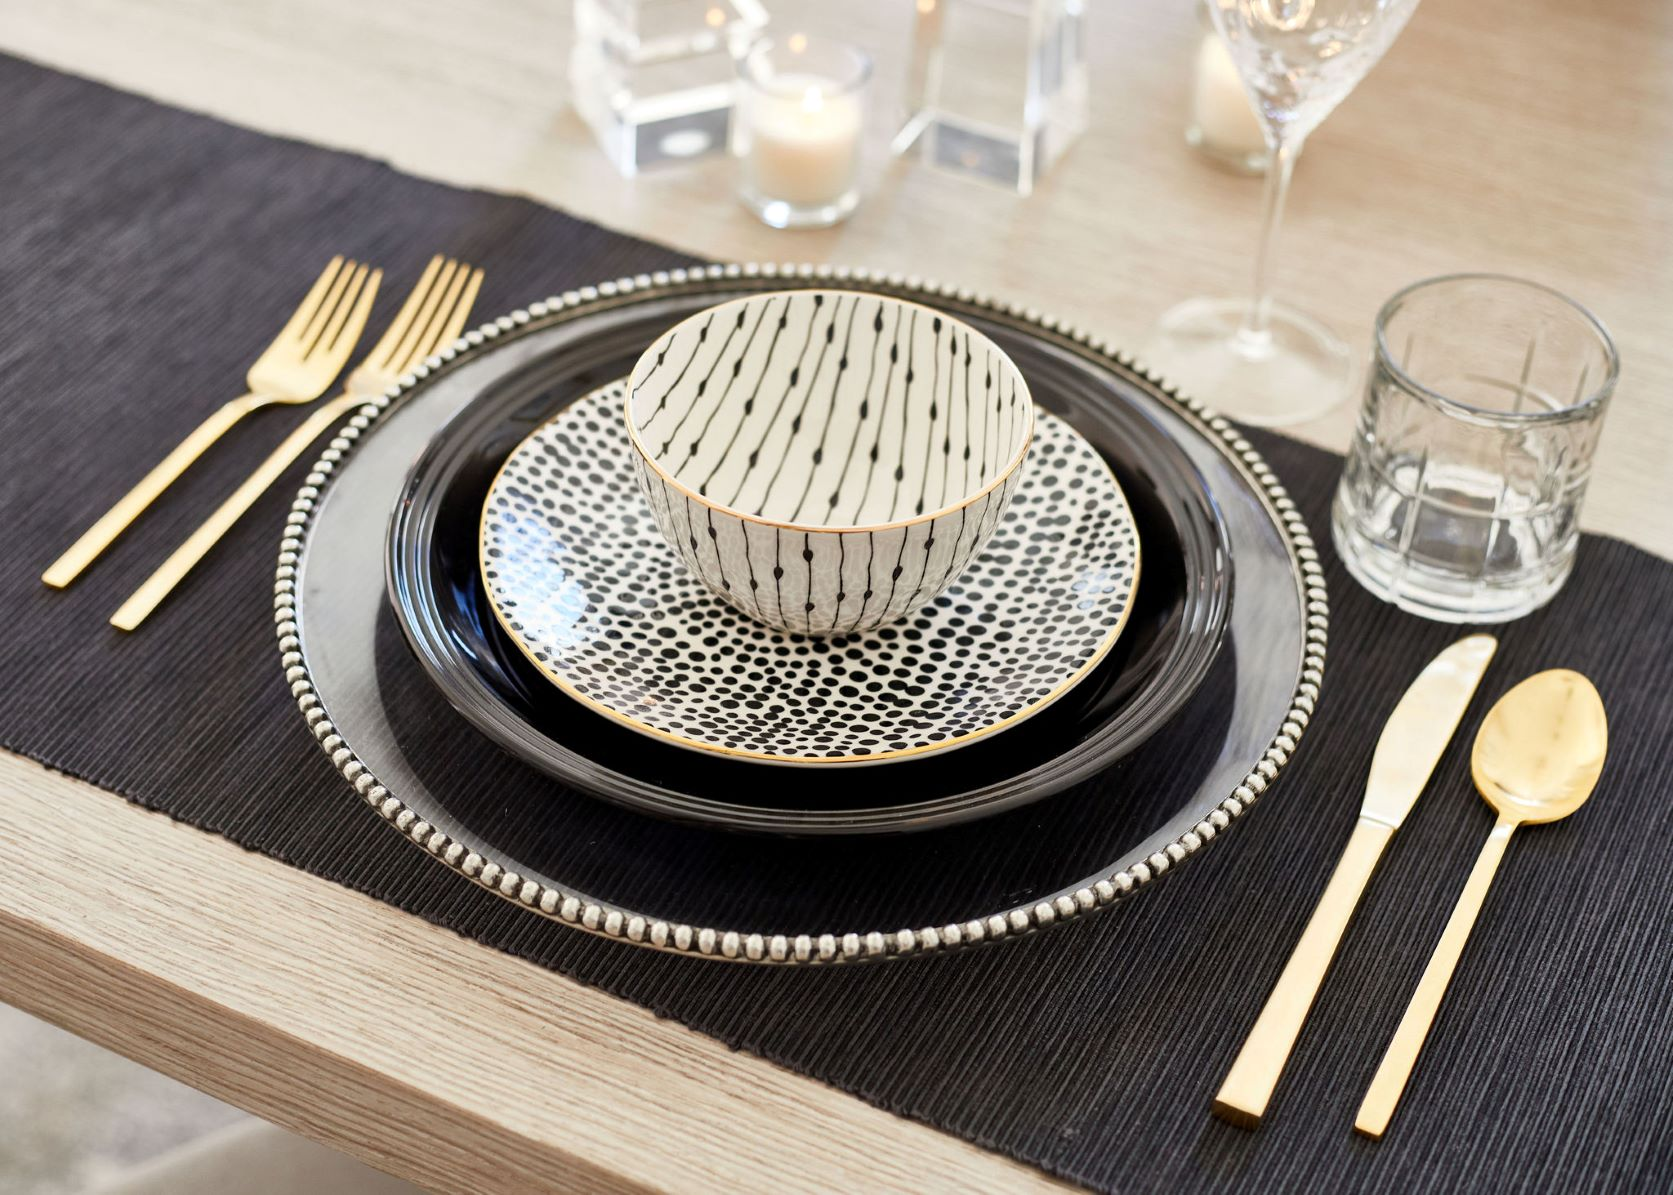 table with black tablecloth, plate, gold flatware, and patterned bowls